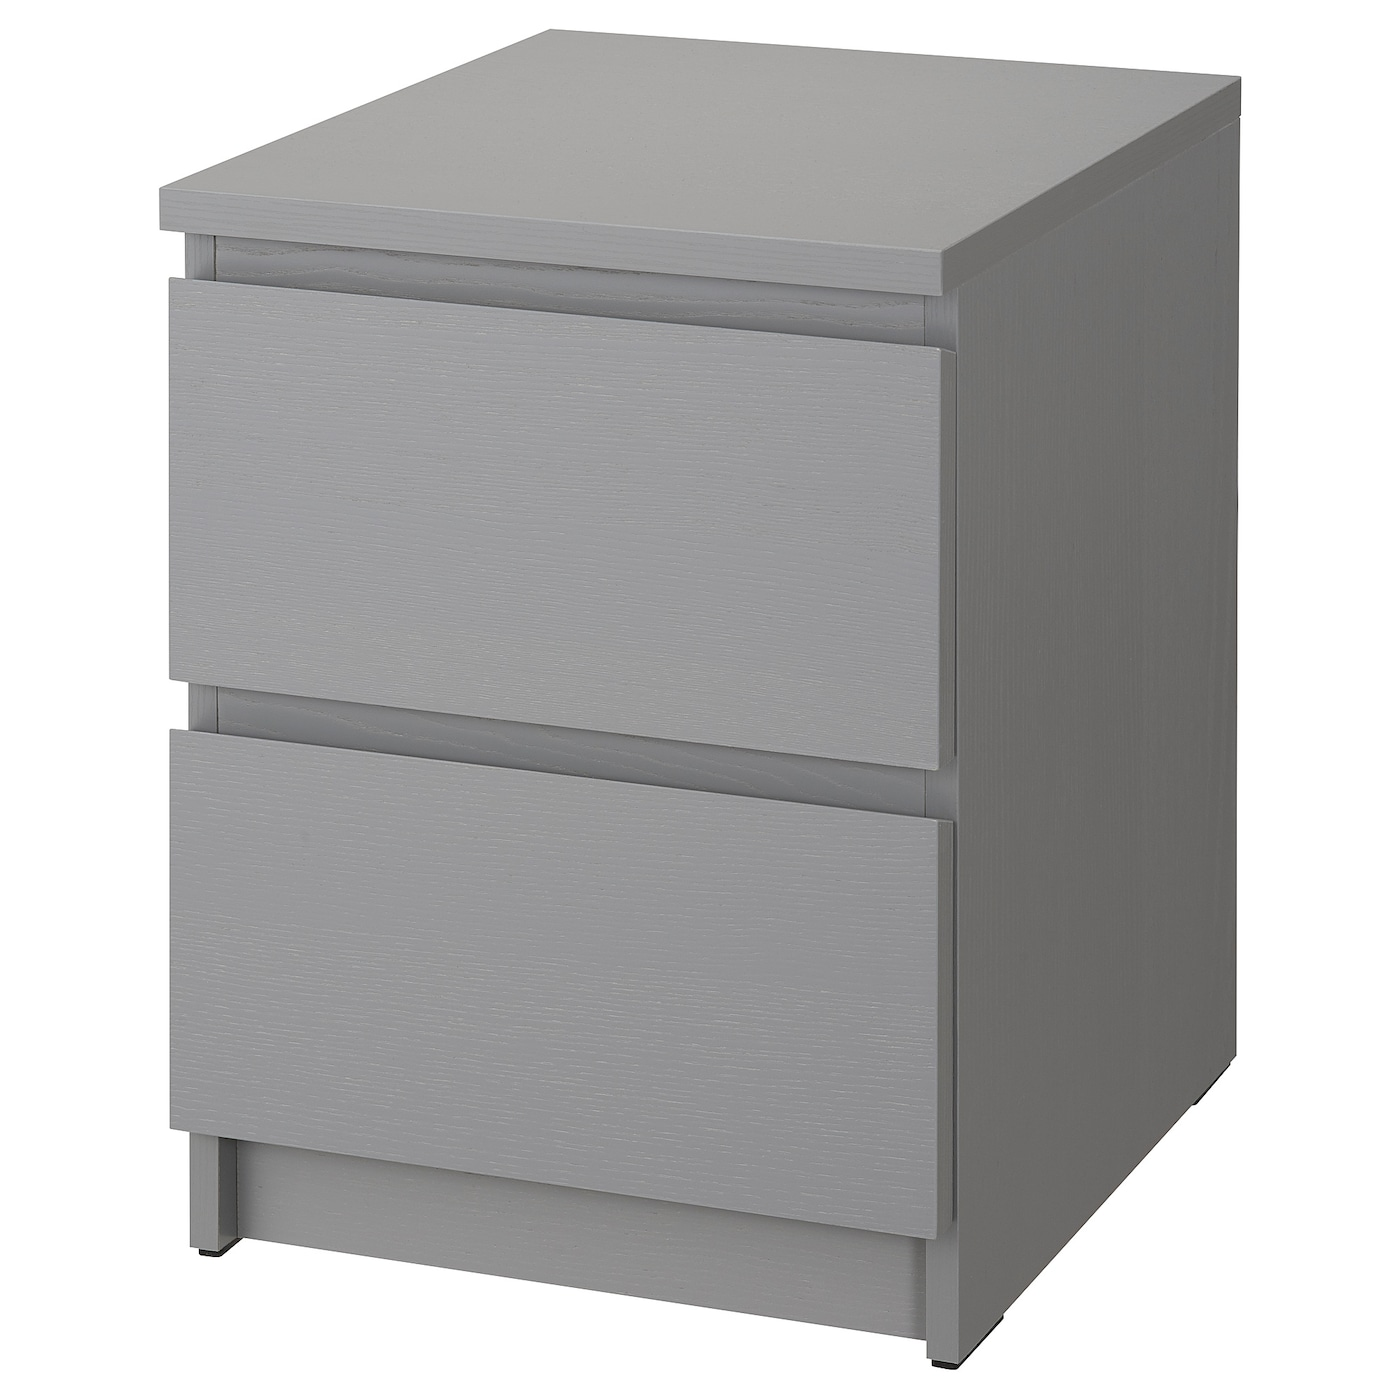 Malm Chest Of 2 Drawers Grey Stained 40x55 Cm Ikea